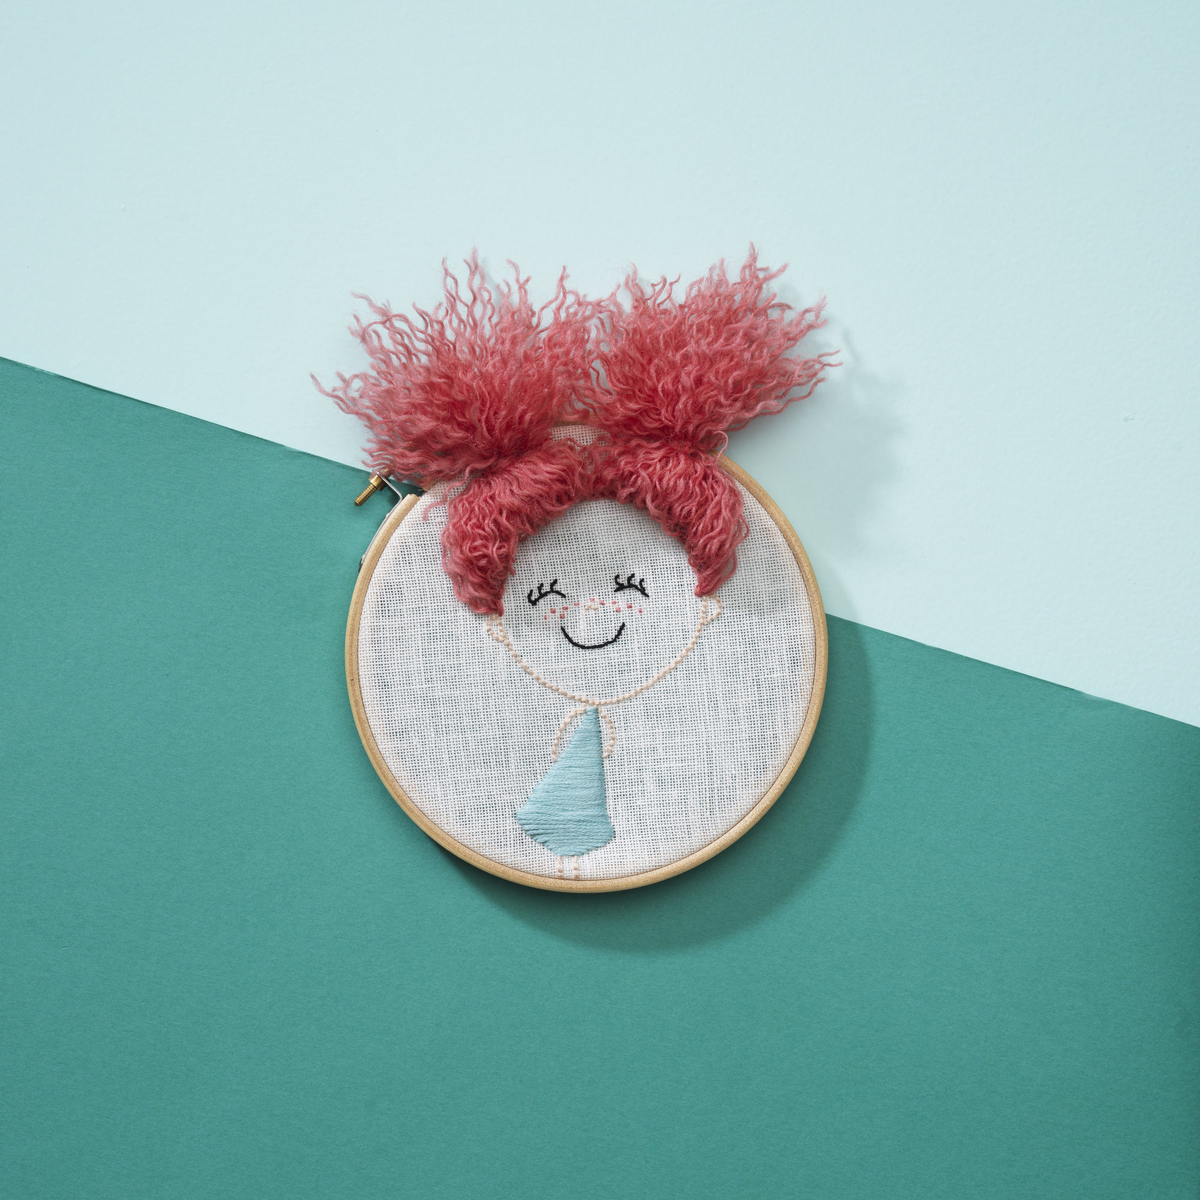 Playful embroidery